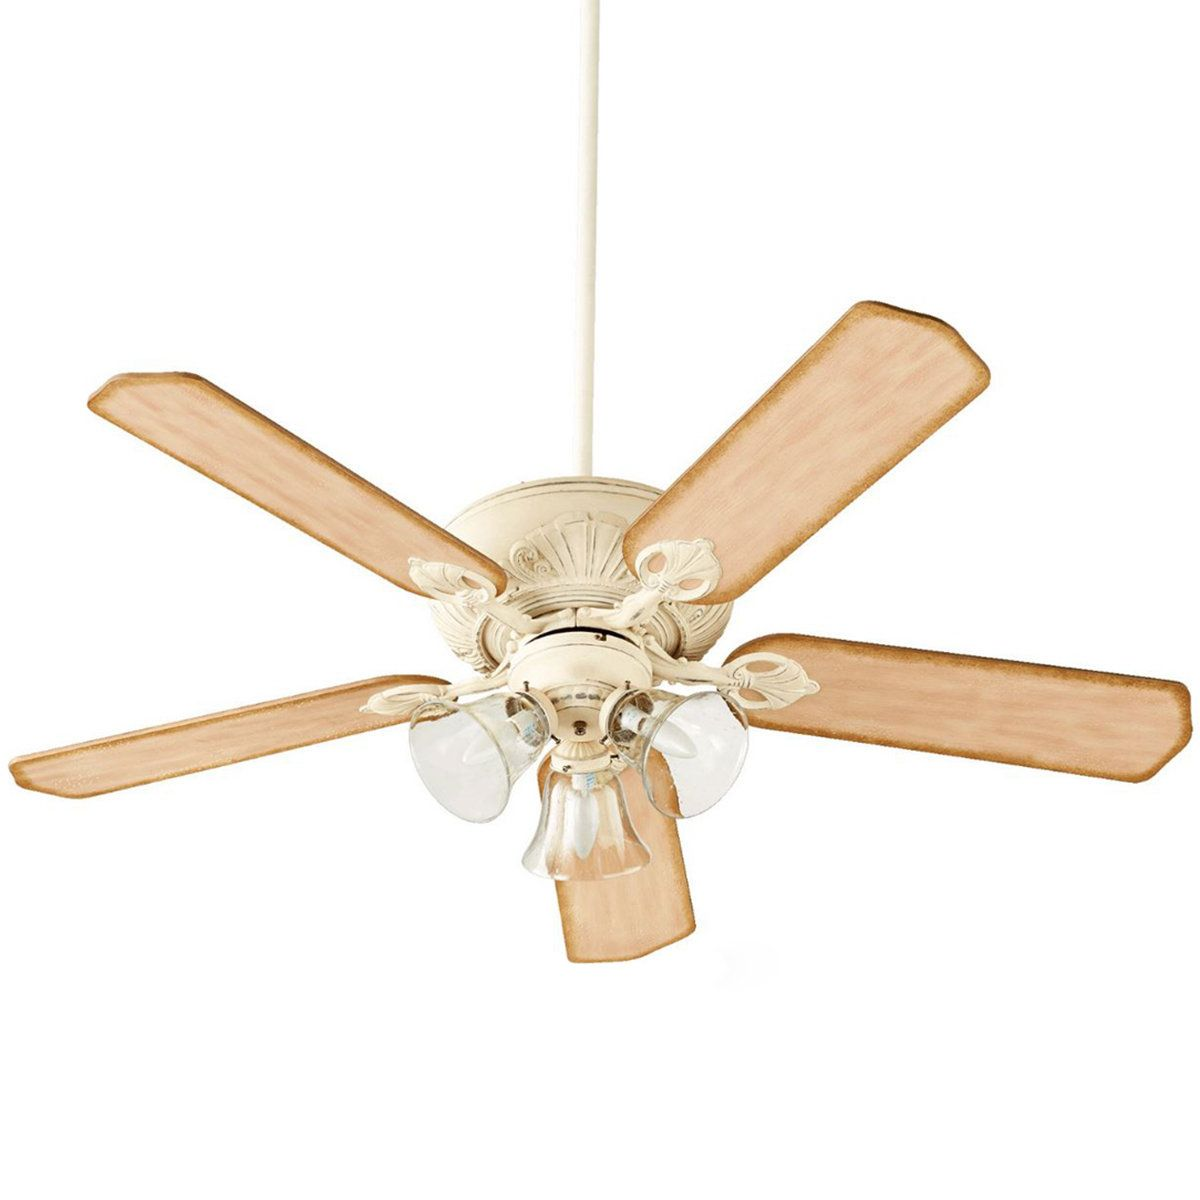 52 French Country Ceiling Fan Ceiling Fan With Light Ceiling Fan French Country Ceiling Fan